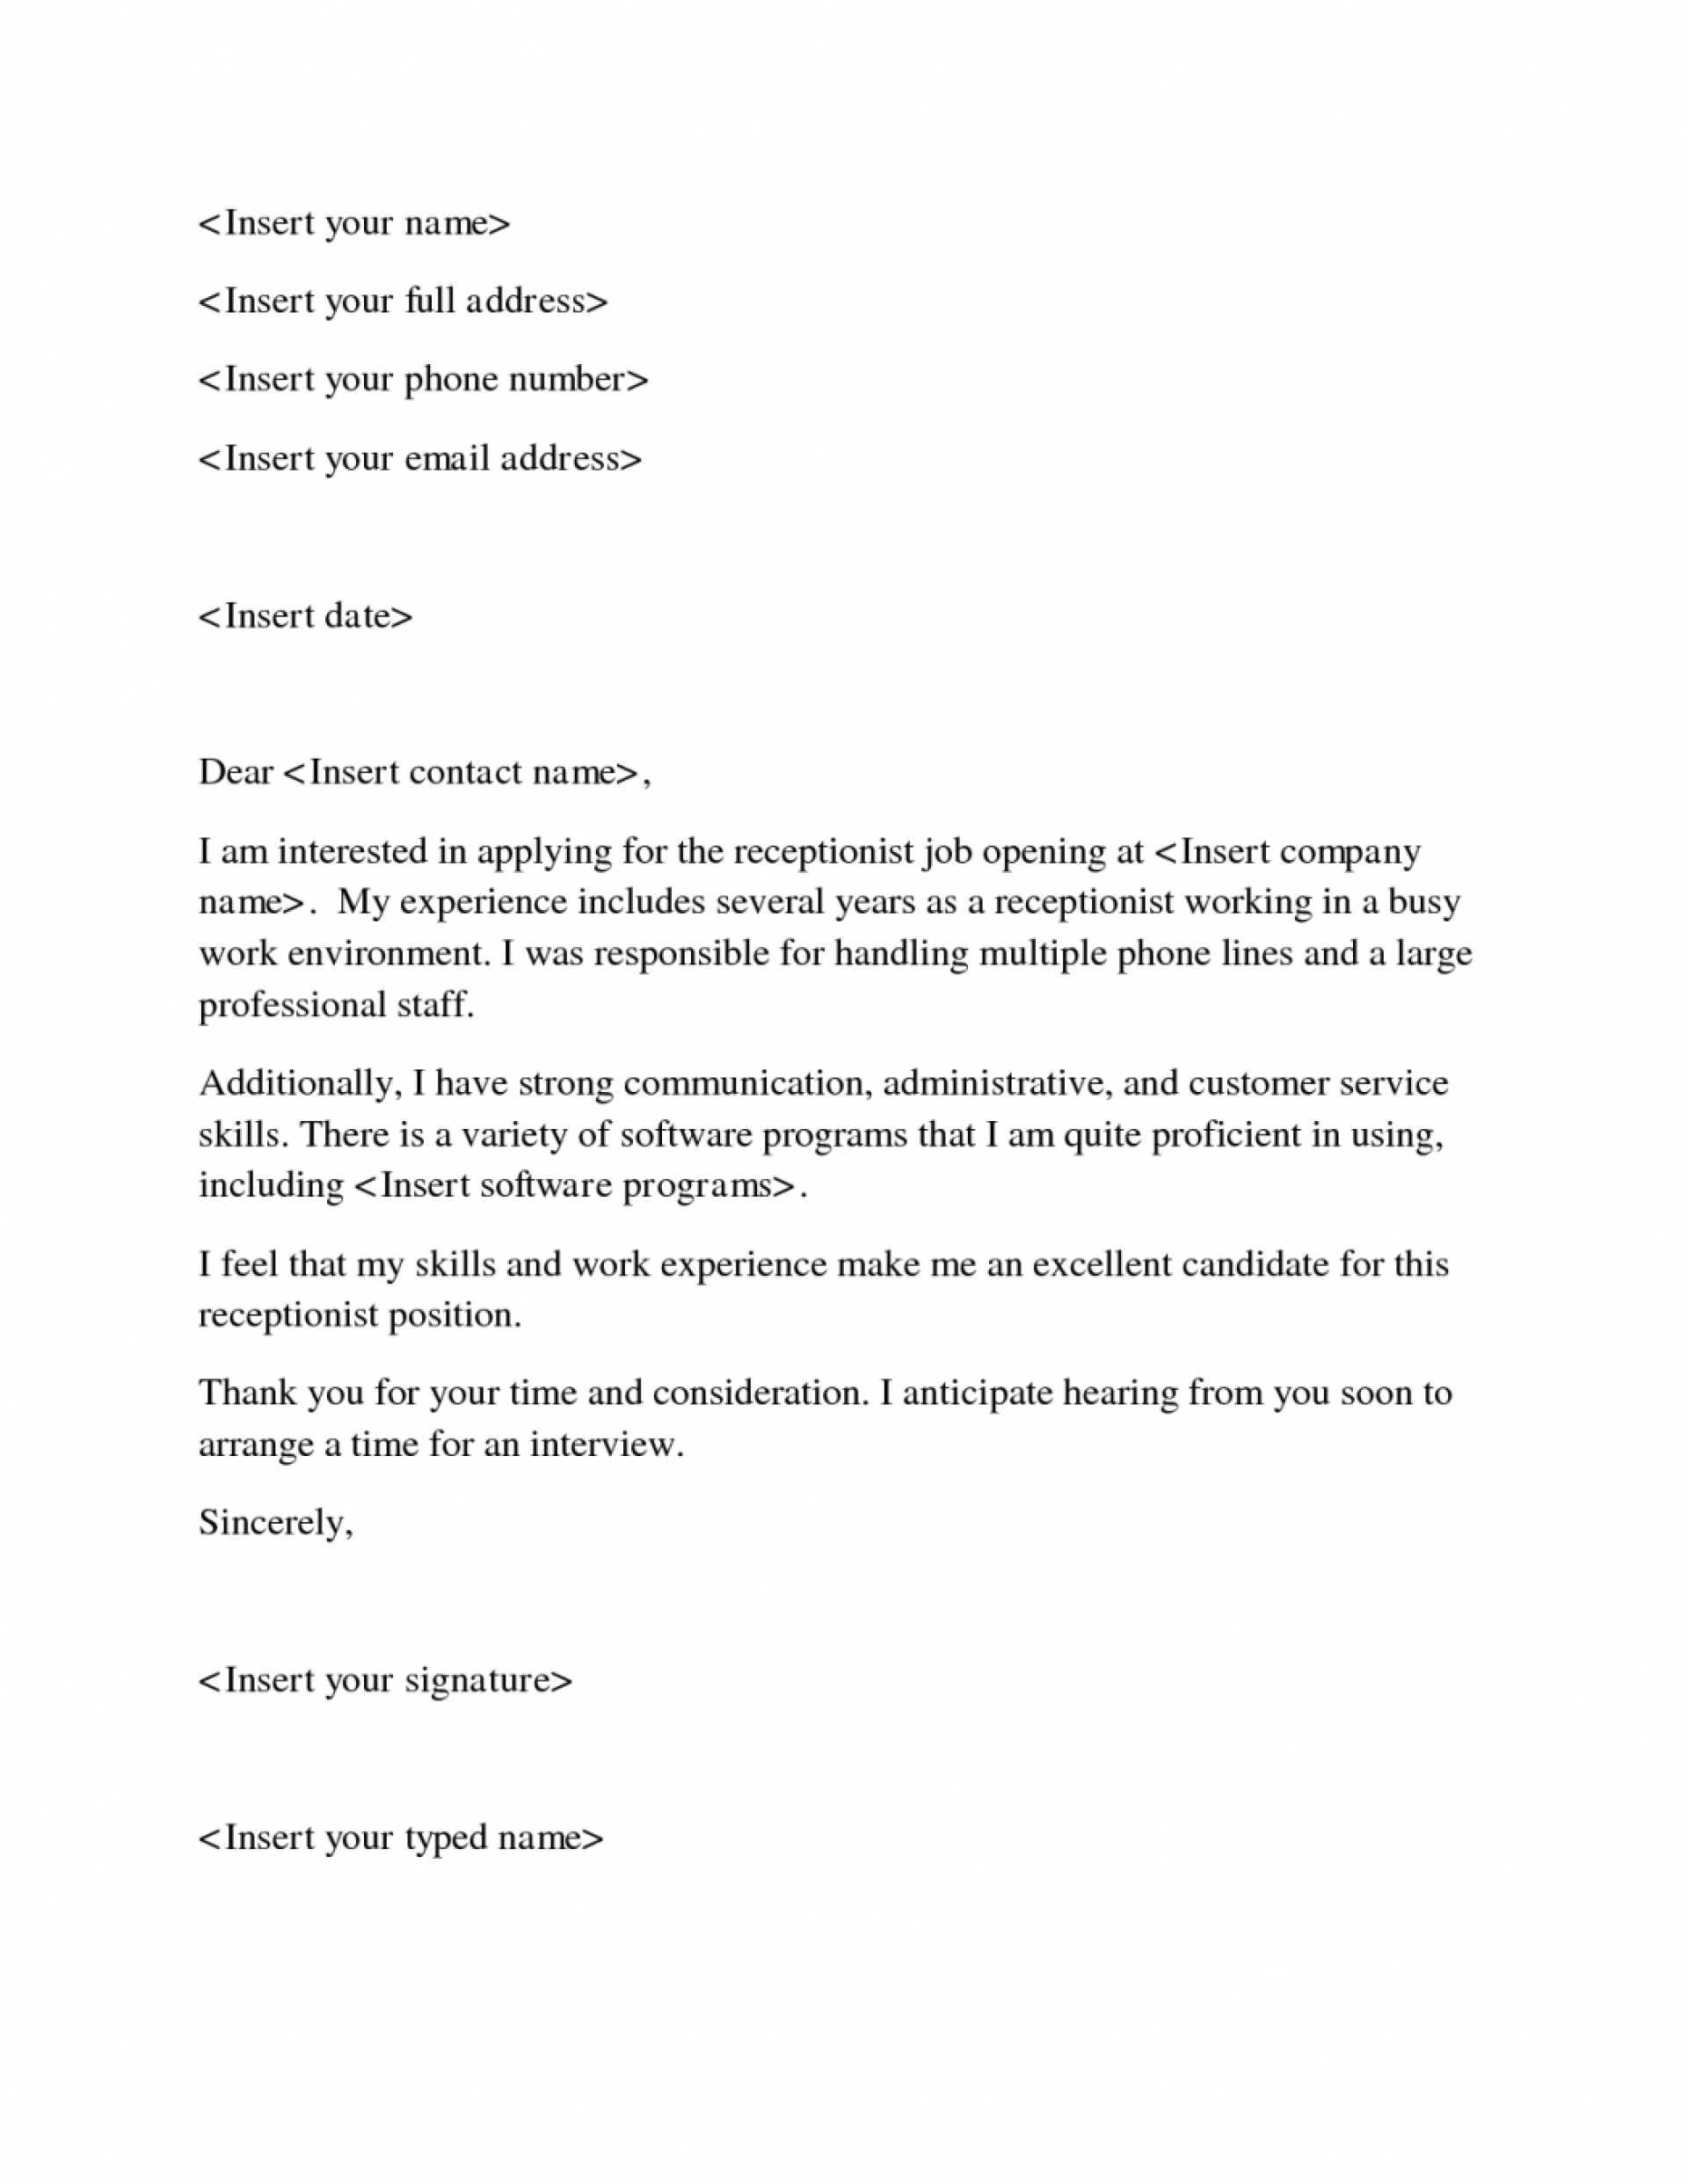 006 Essay Example Social Commentary Simple Cover Letter Help Receptionist Resume Top Ib Analysis Examples Reflective Critical Meta Dreaded Art The Great Gatsby 1920